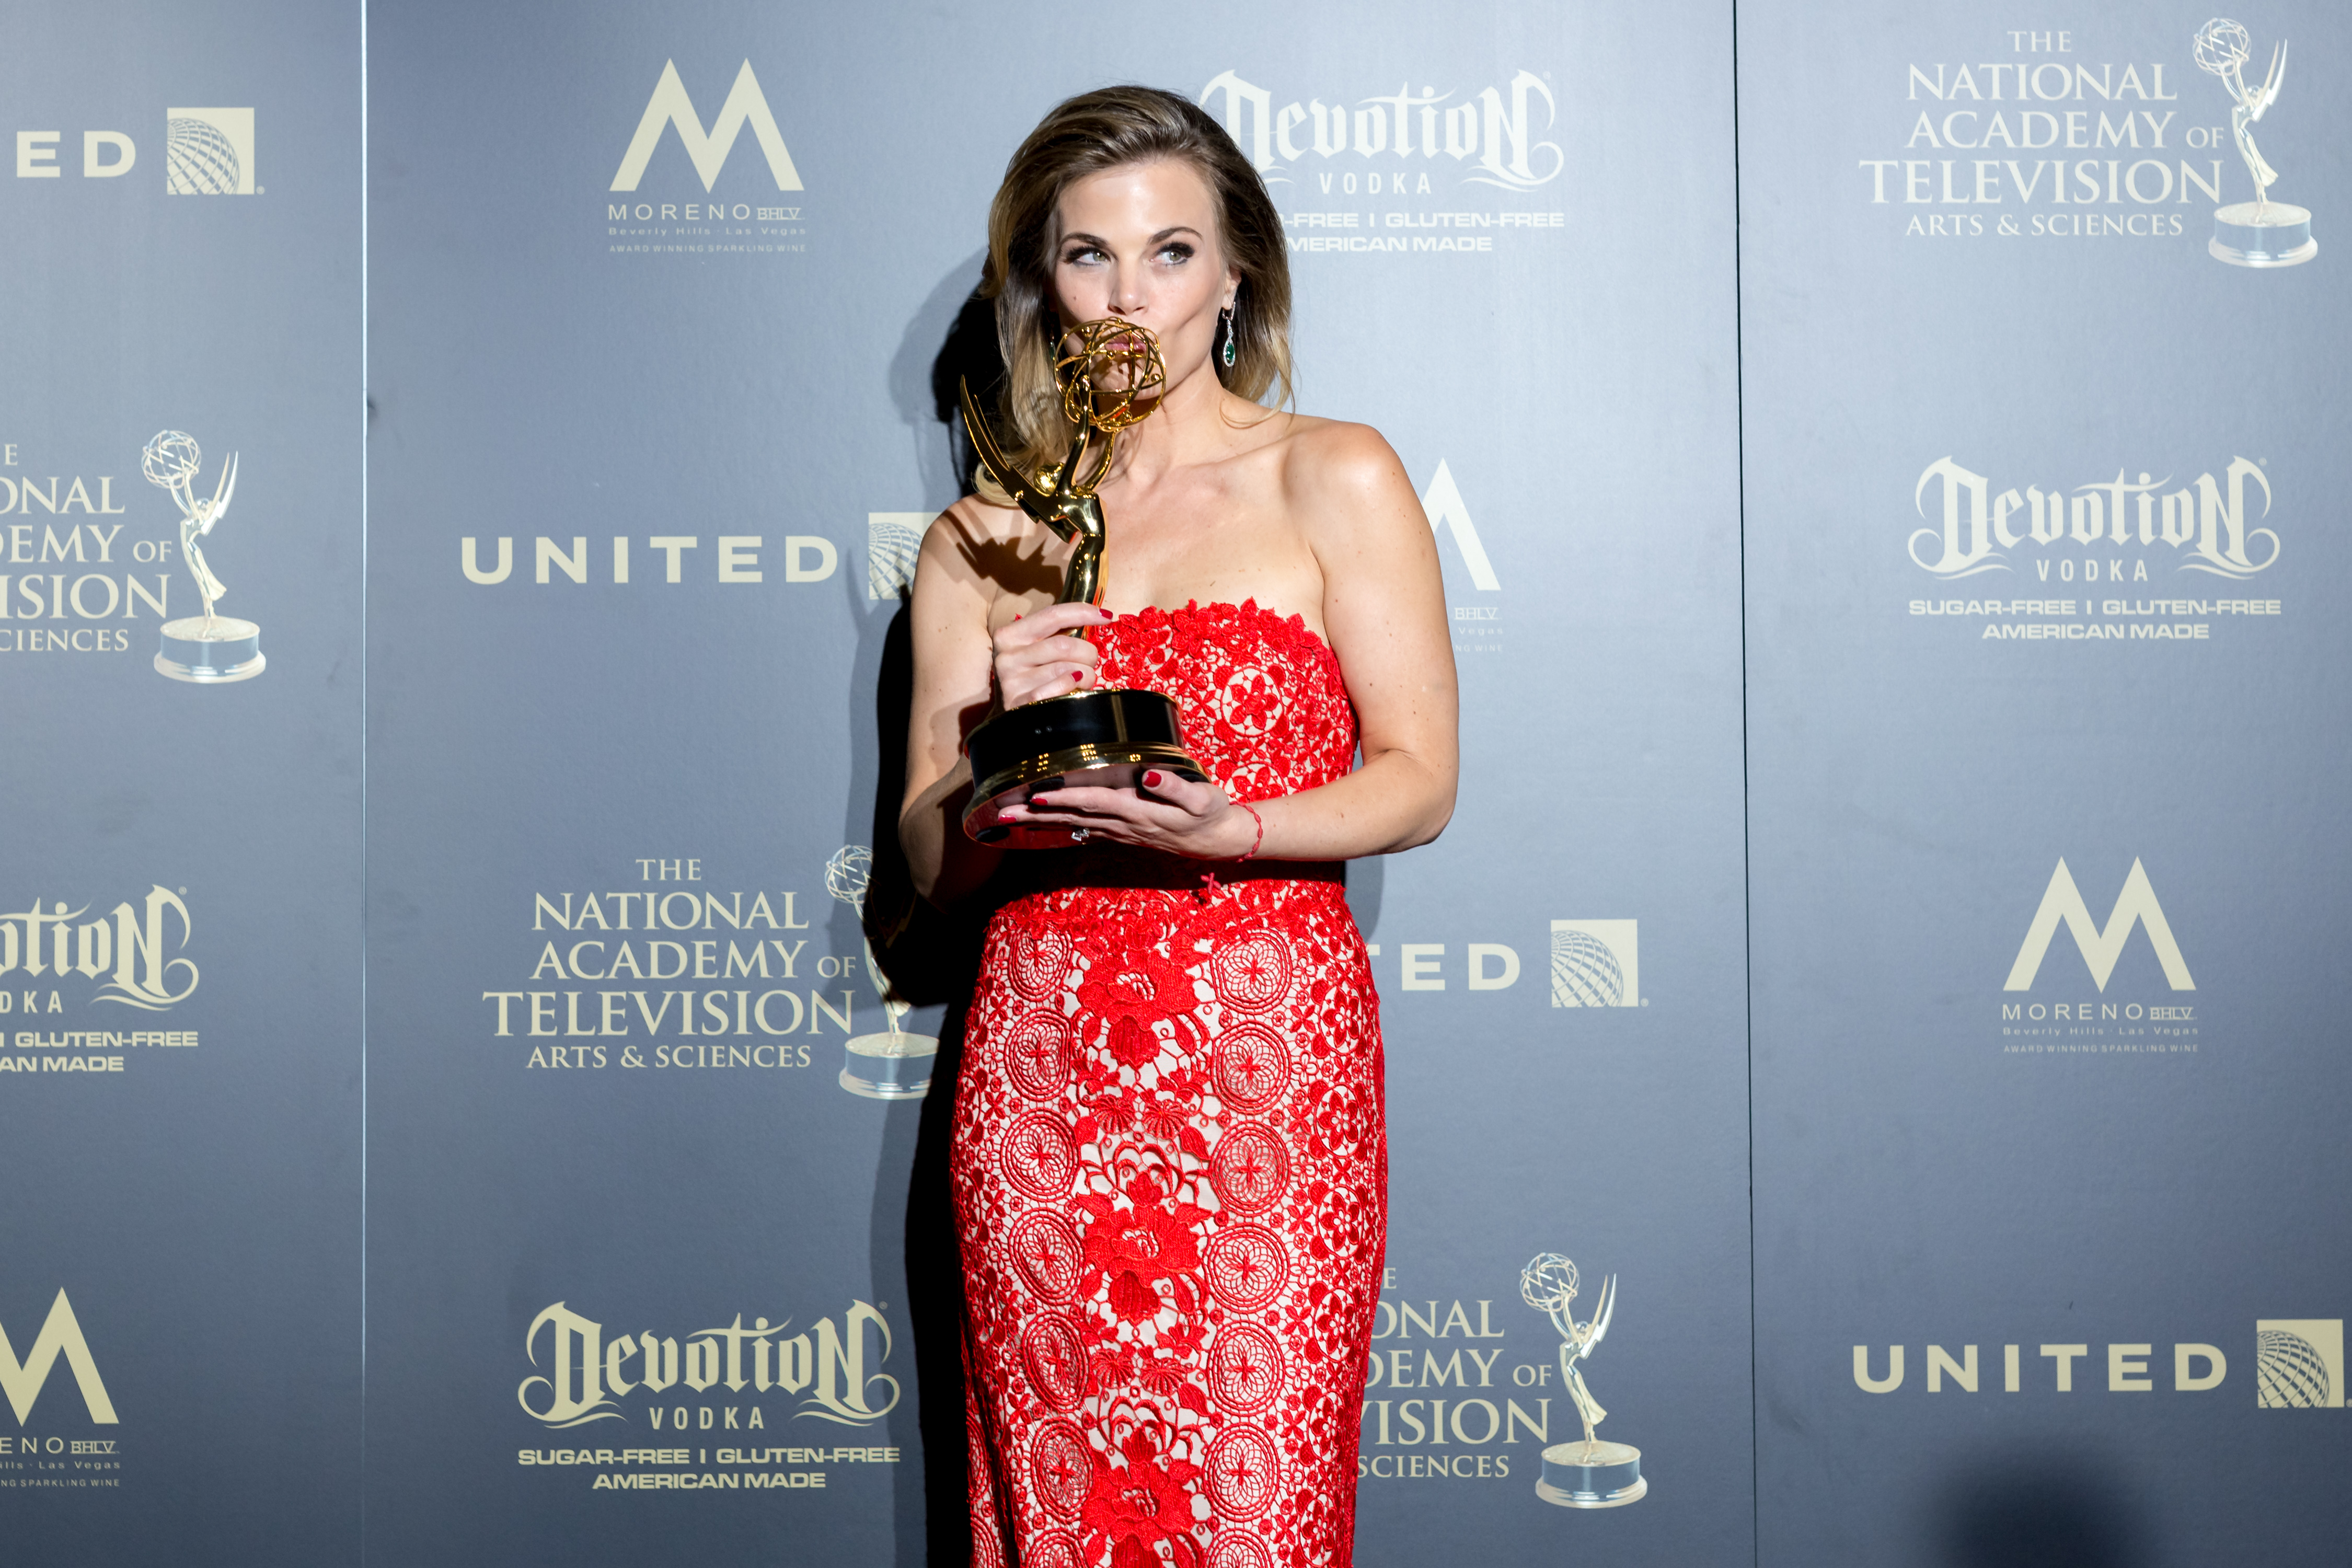 Gina Tognoni wins an Emmy for Lead Actress in Y&R